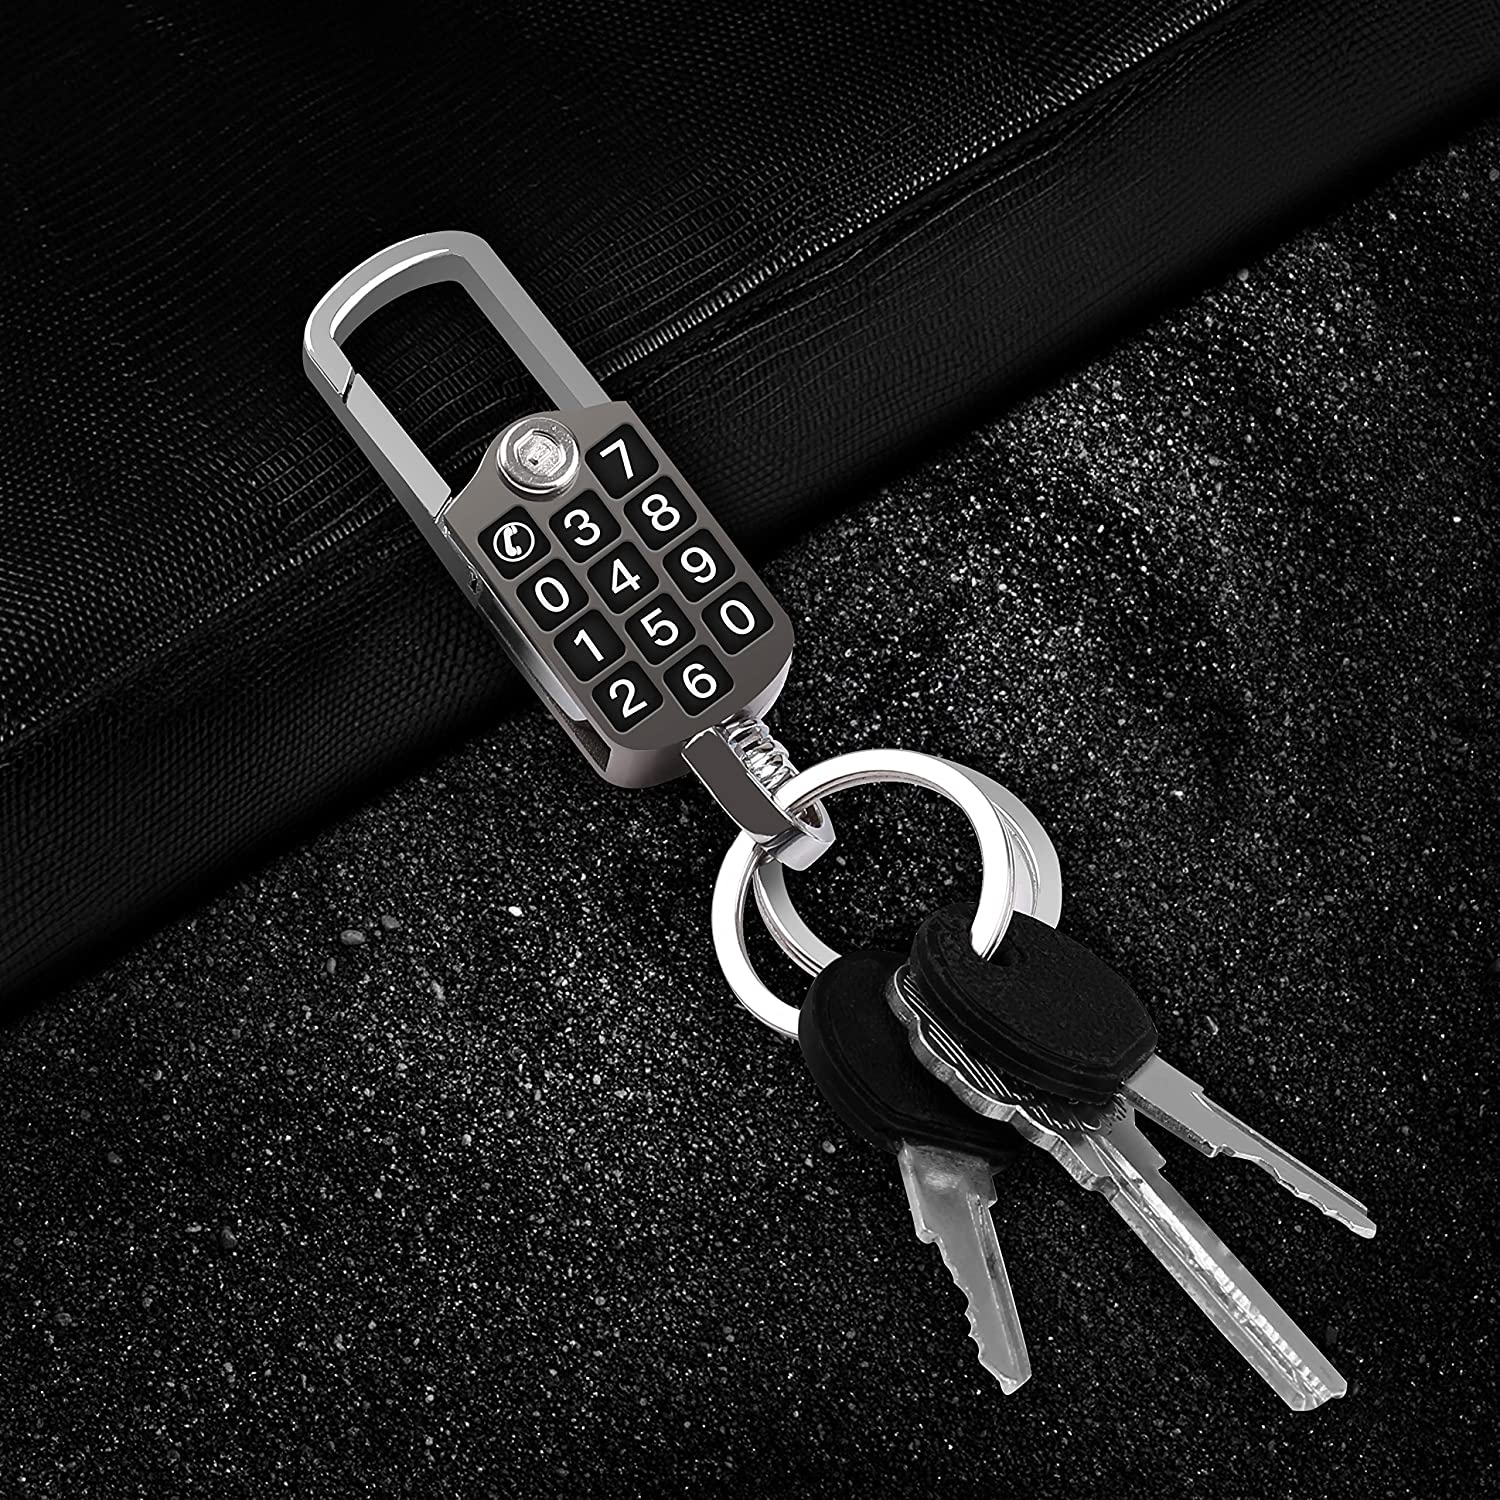 Deep Gray Intermerge Keychain 2 Key Rings Stainless Steel Key Chain with Bottle Opener and Phone Number Monitor Stainless Steel Multi-Tool for Men and Women Business Key Clip